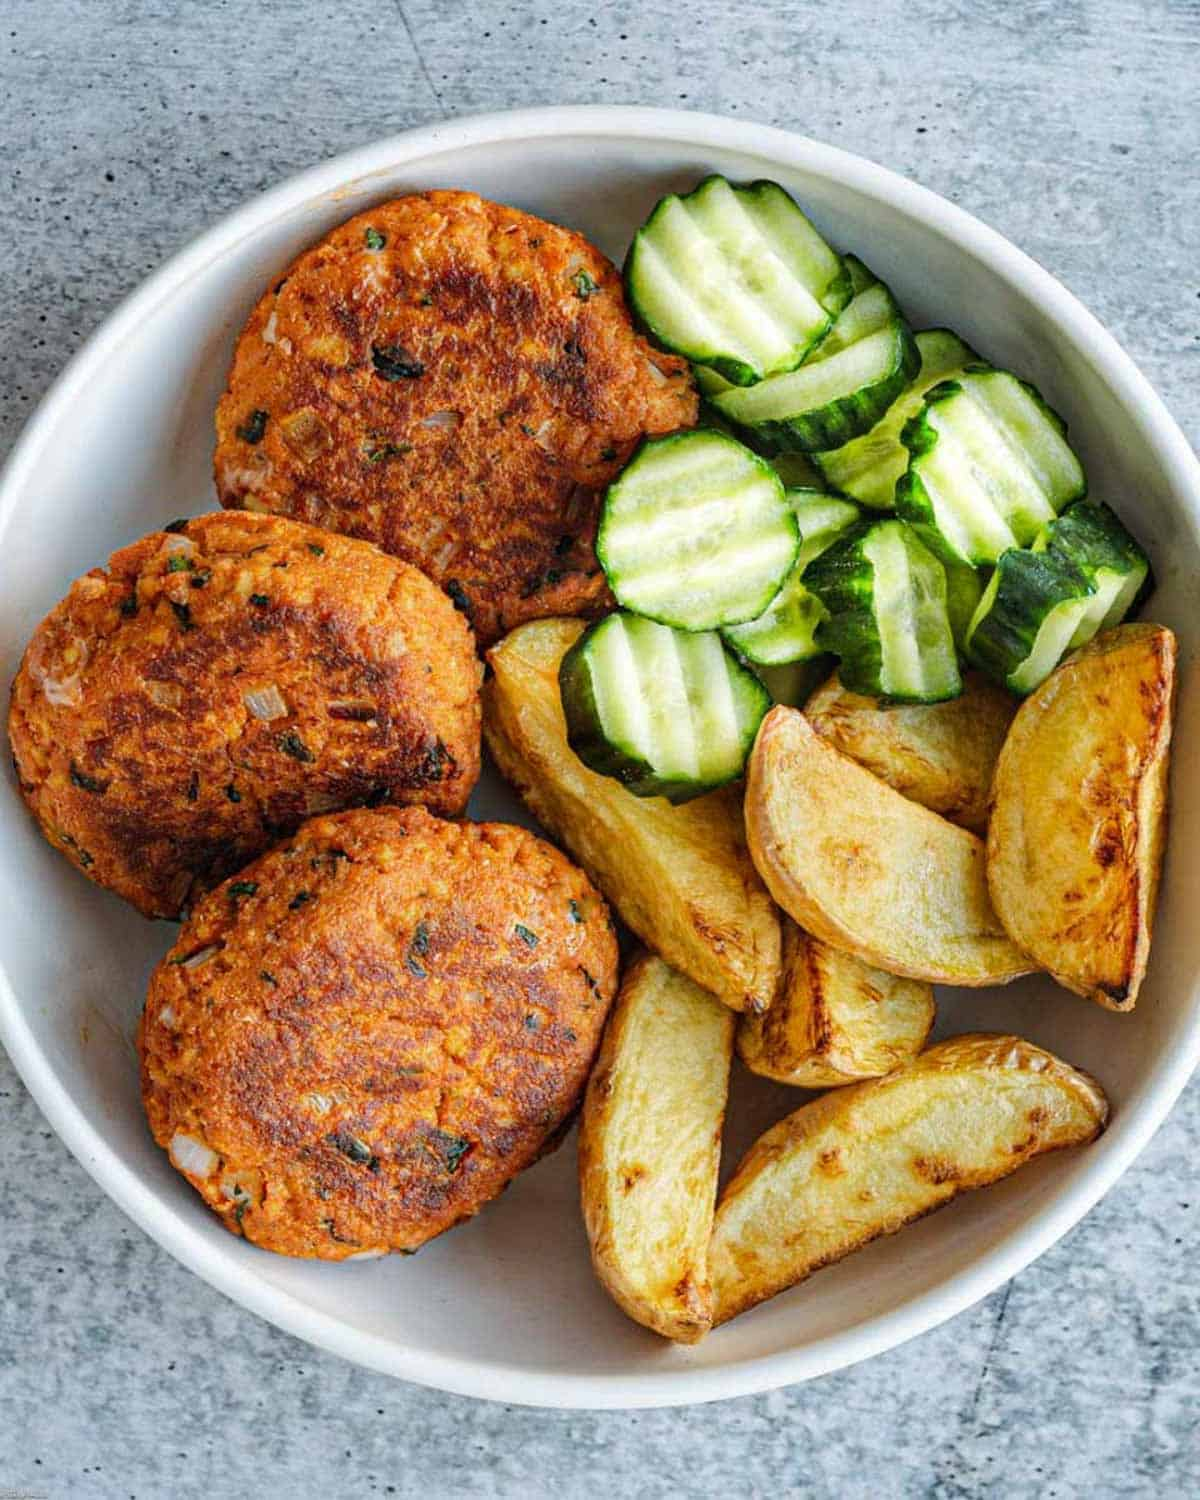 Tofu burgers with Thai seasoning, crinkle cut cucumbers, and home fries in a bowl.